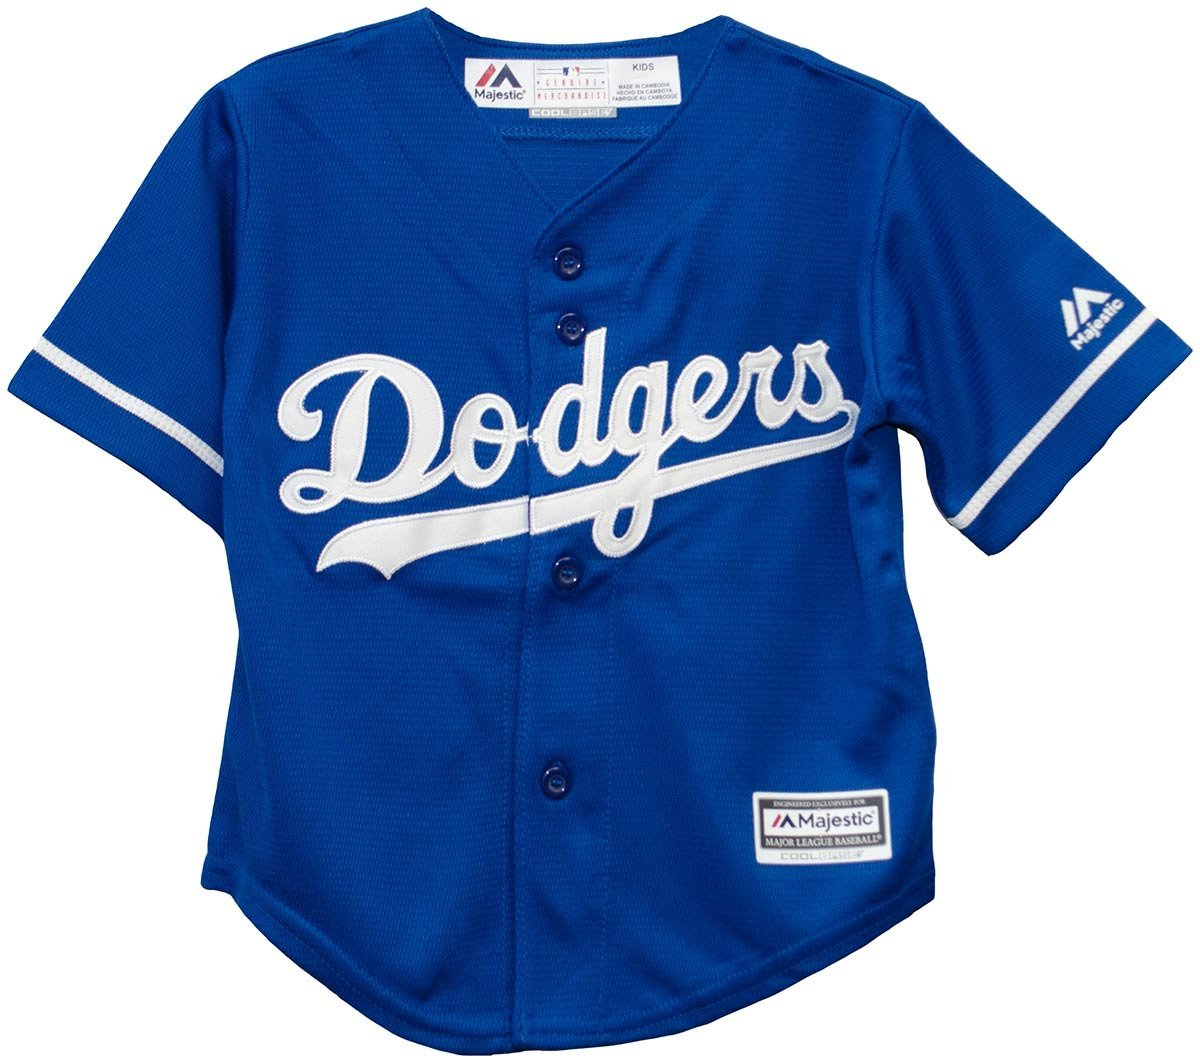 bba34b8f4 Get Quotations · Majestic Kids youth Royal Blue Los Angeles Dodgers Mlb  Baseball Jersey